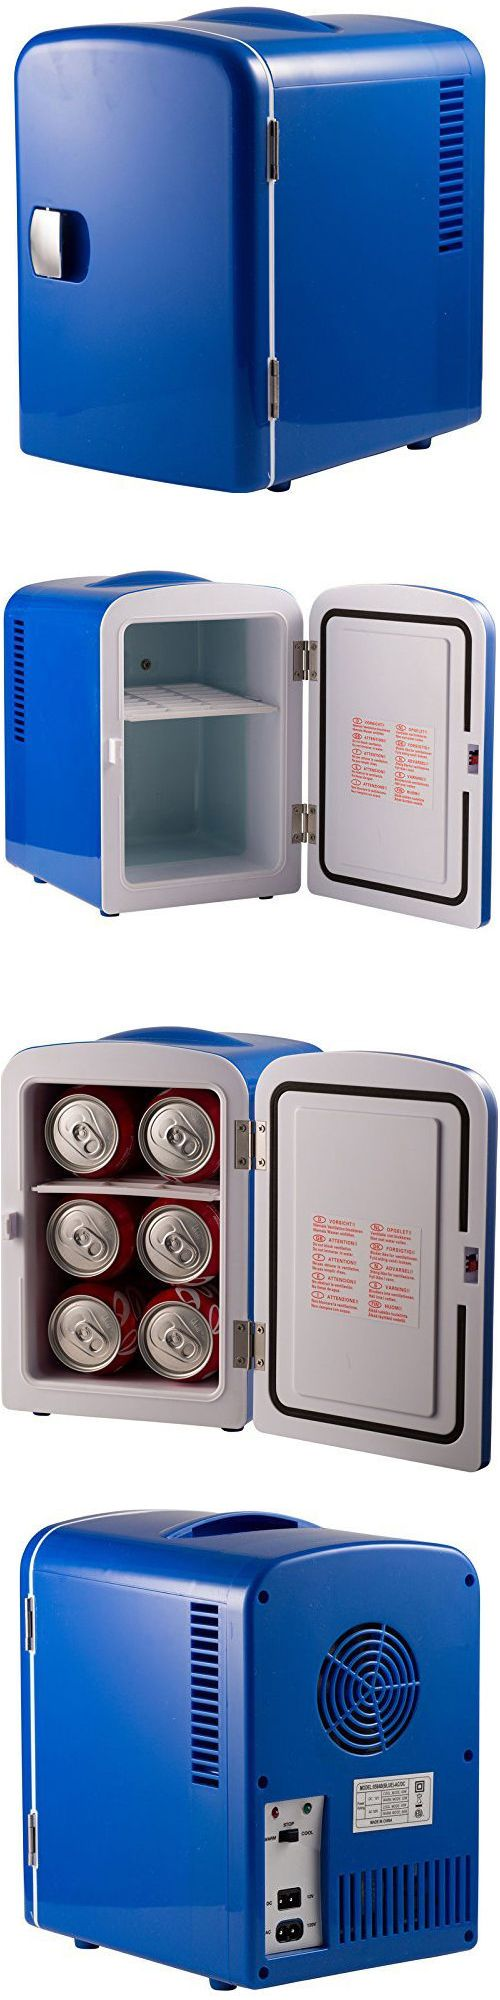 17 Best Ideas About Refrigerator Cooler On Pinterest Old